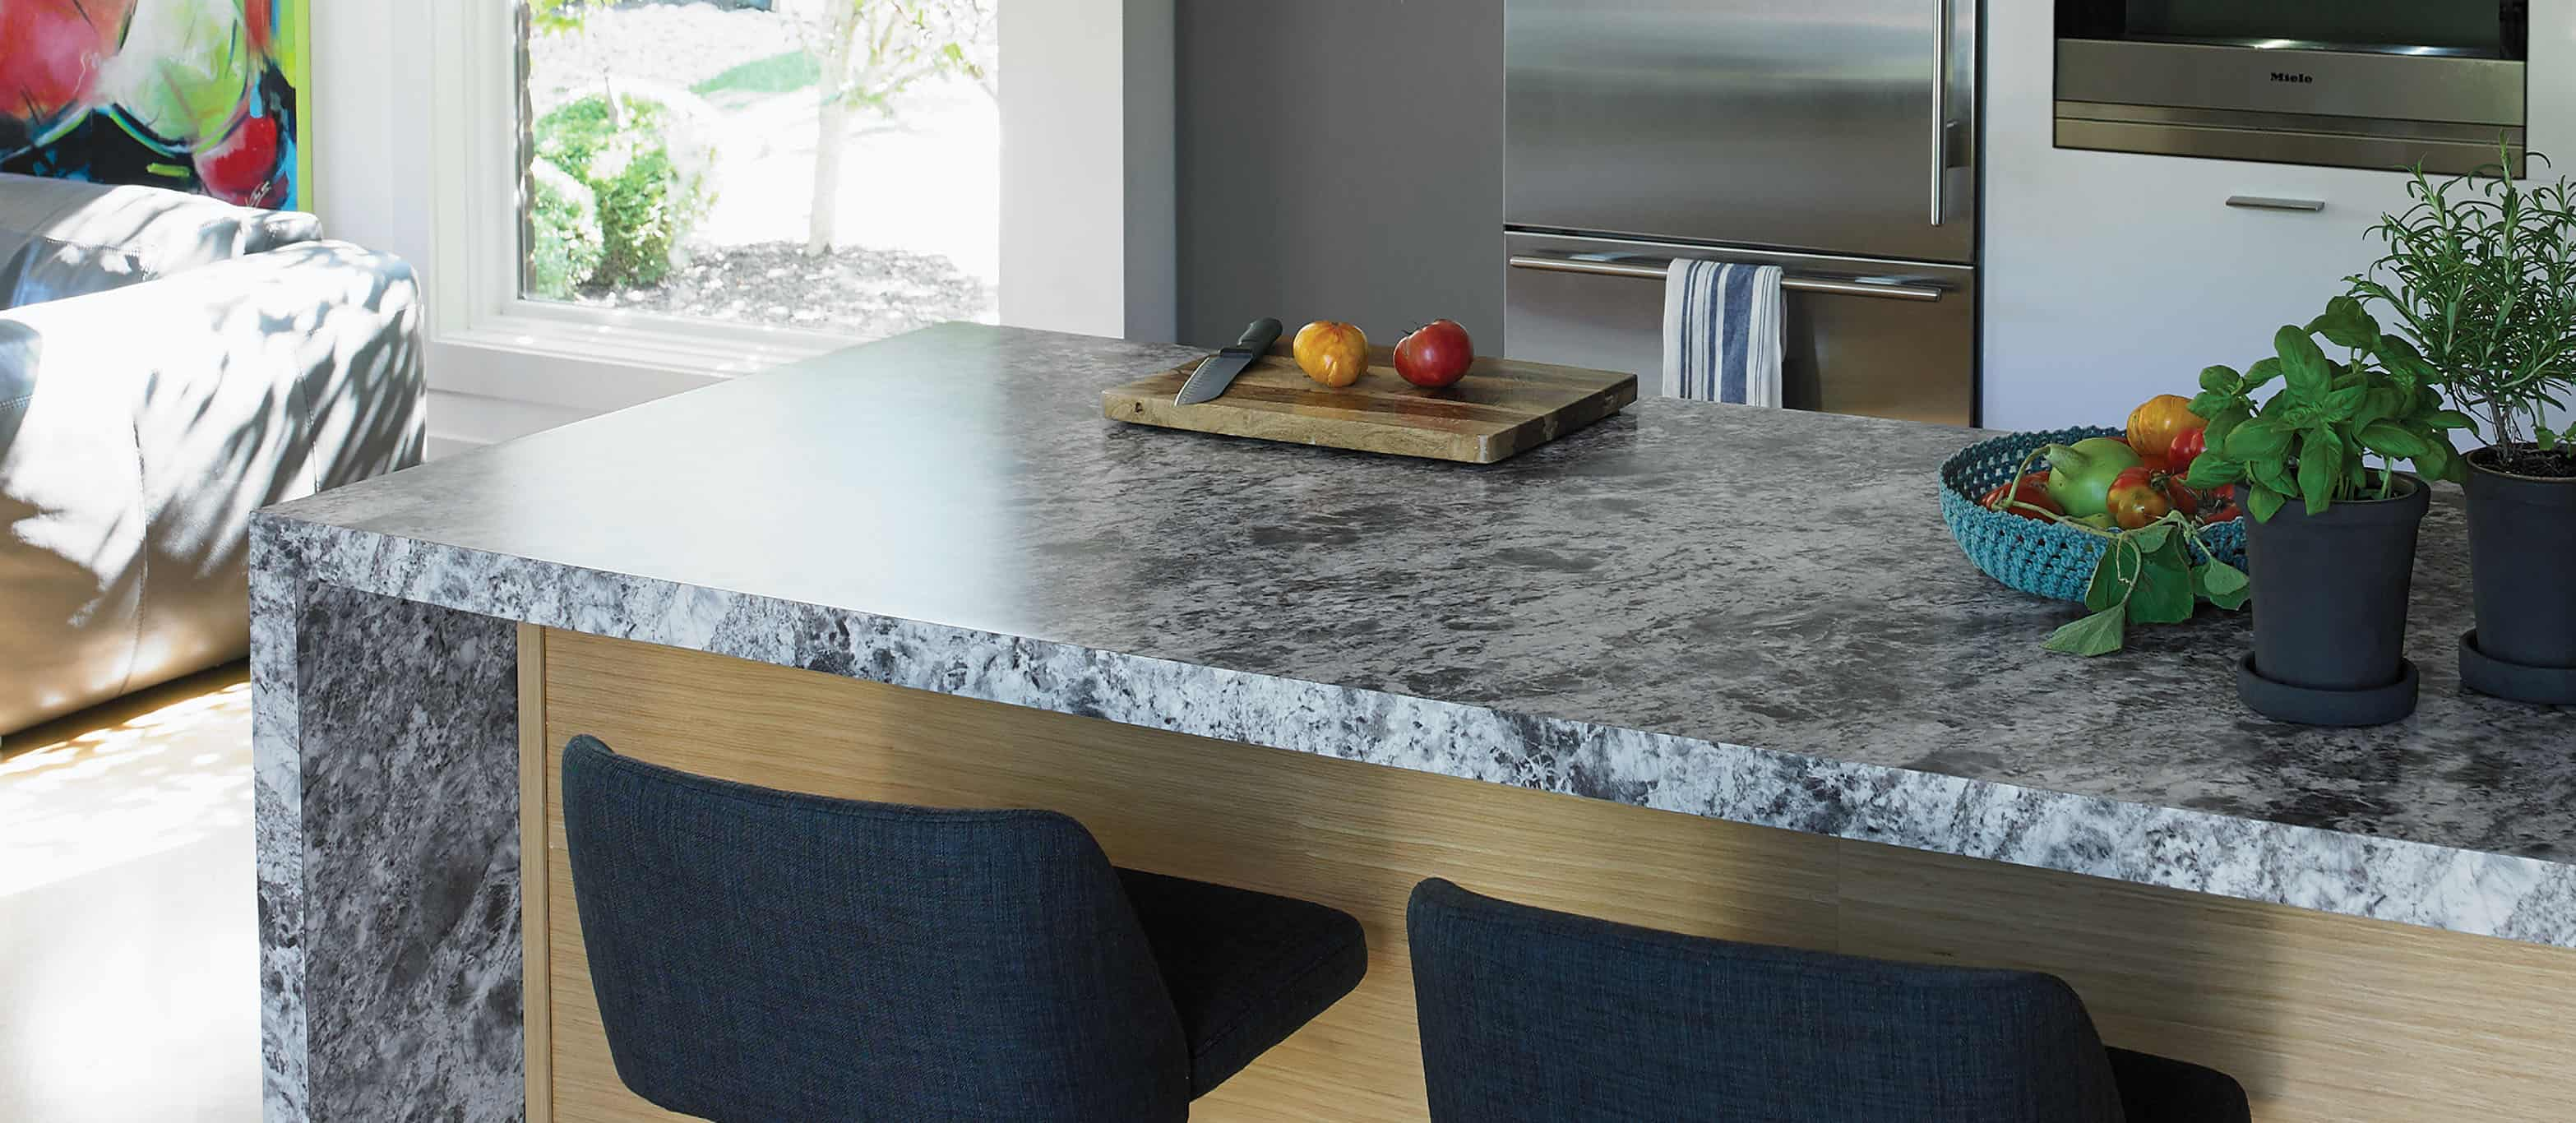 Wholesale Solid Surface Countertops Northeast Cabinet And Countertop The Norfolk Companies